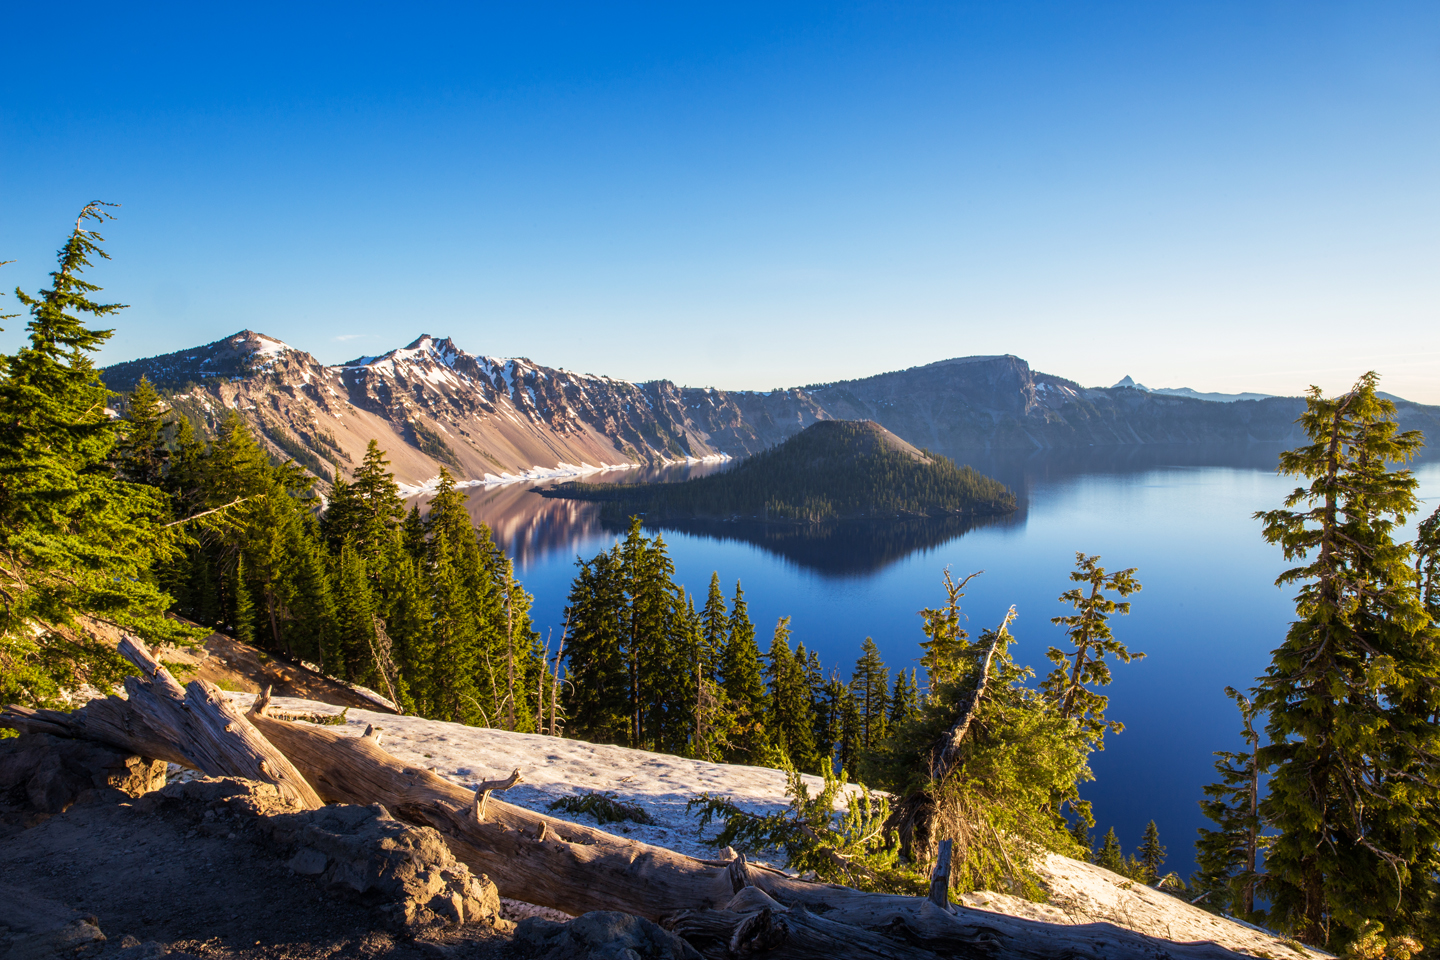 crater-lake-sunrise-wizard-island-tree-stump